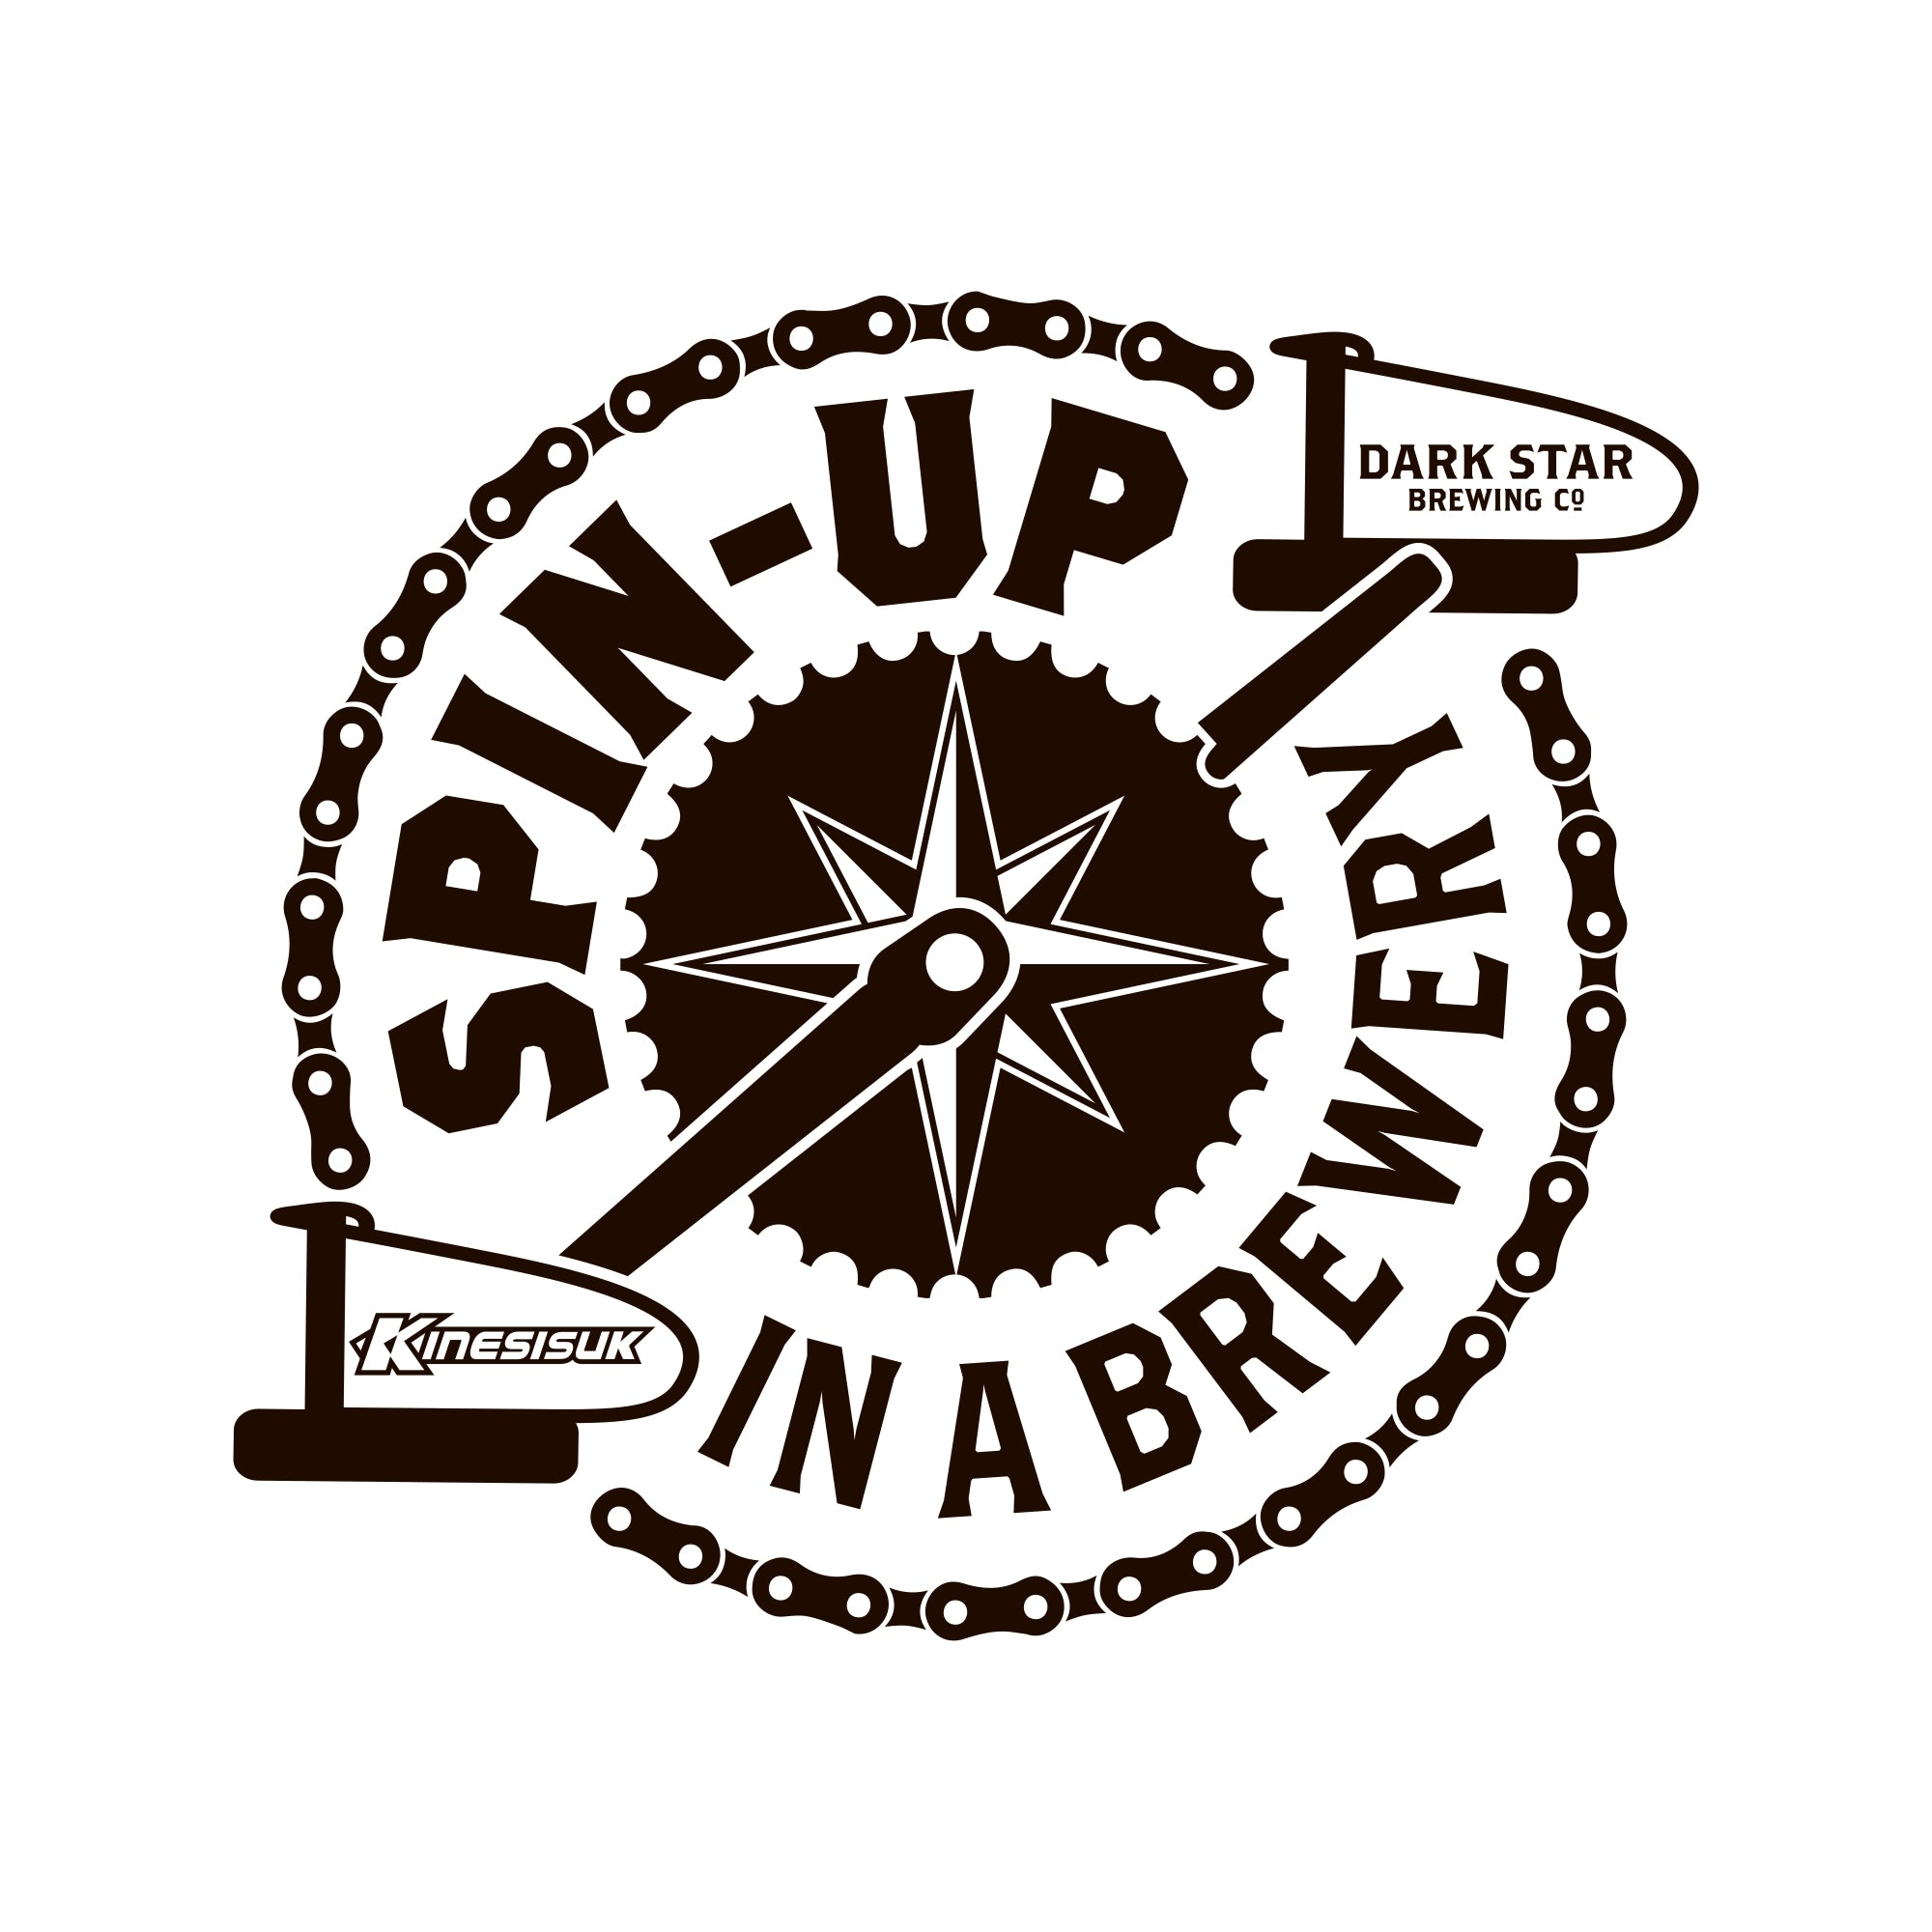 Spin up in a Brewery Logo